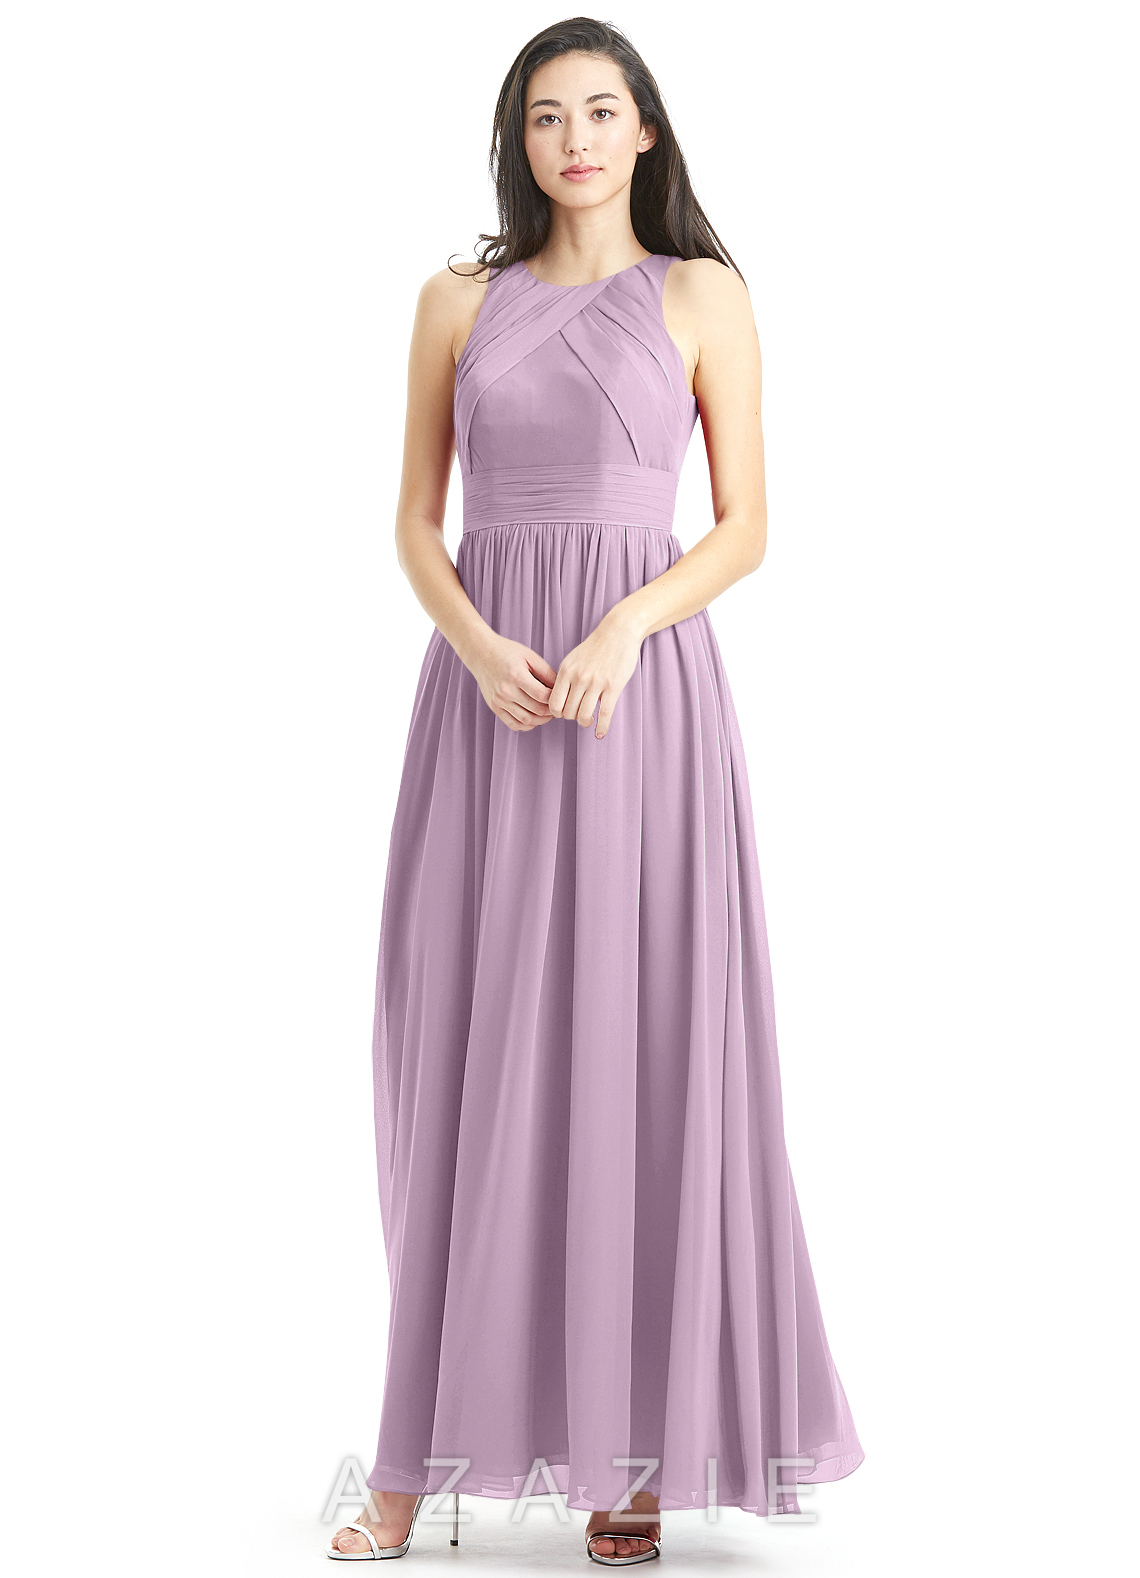 733003fcaca0 Azazie Harper Bridesmaid Dress | Azazie